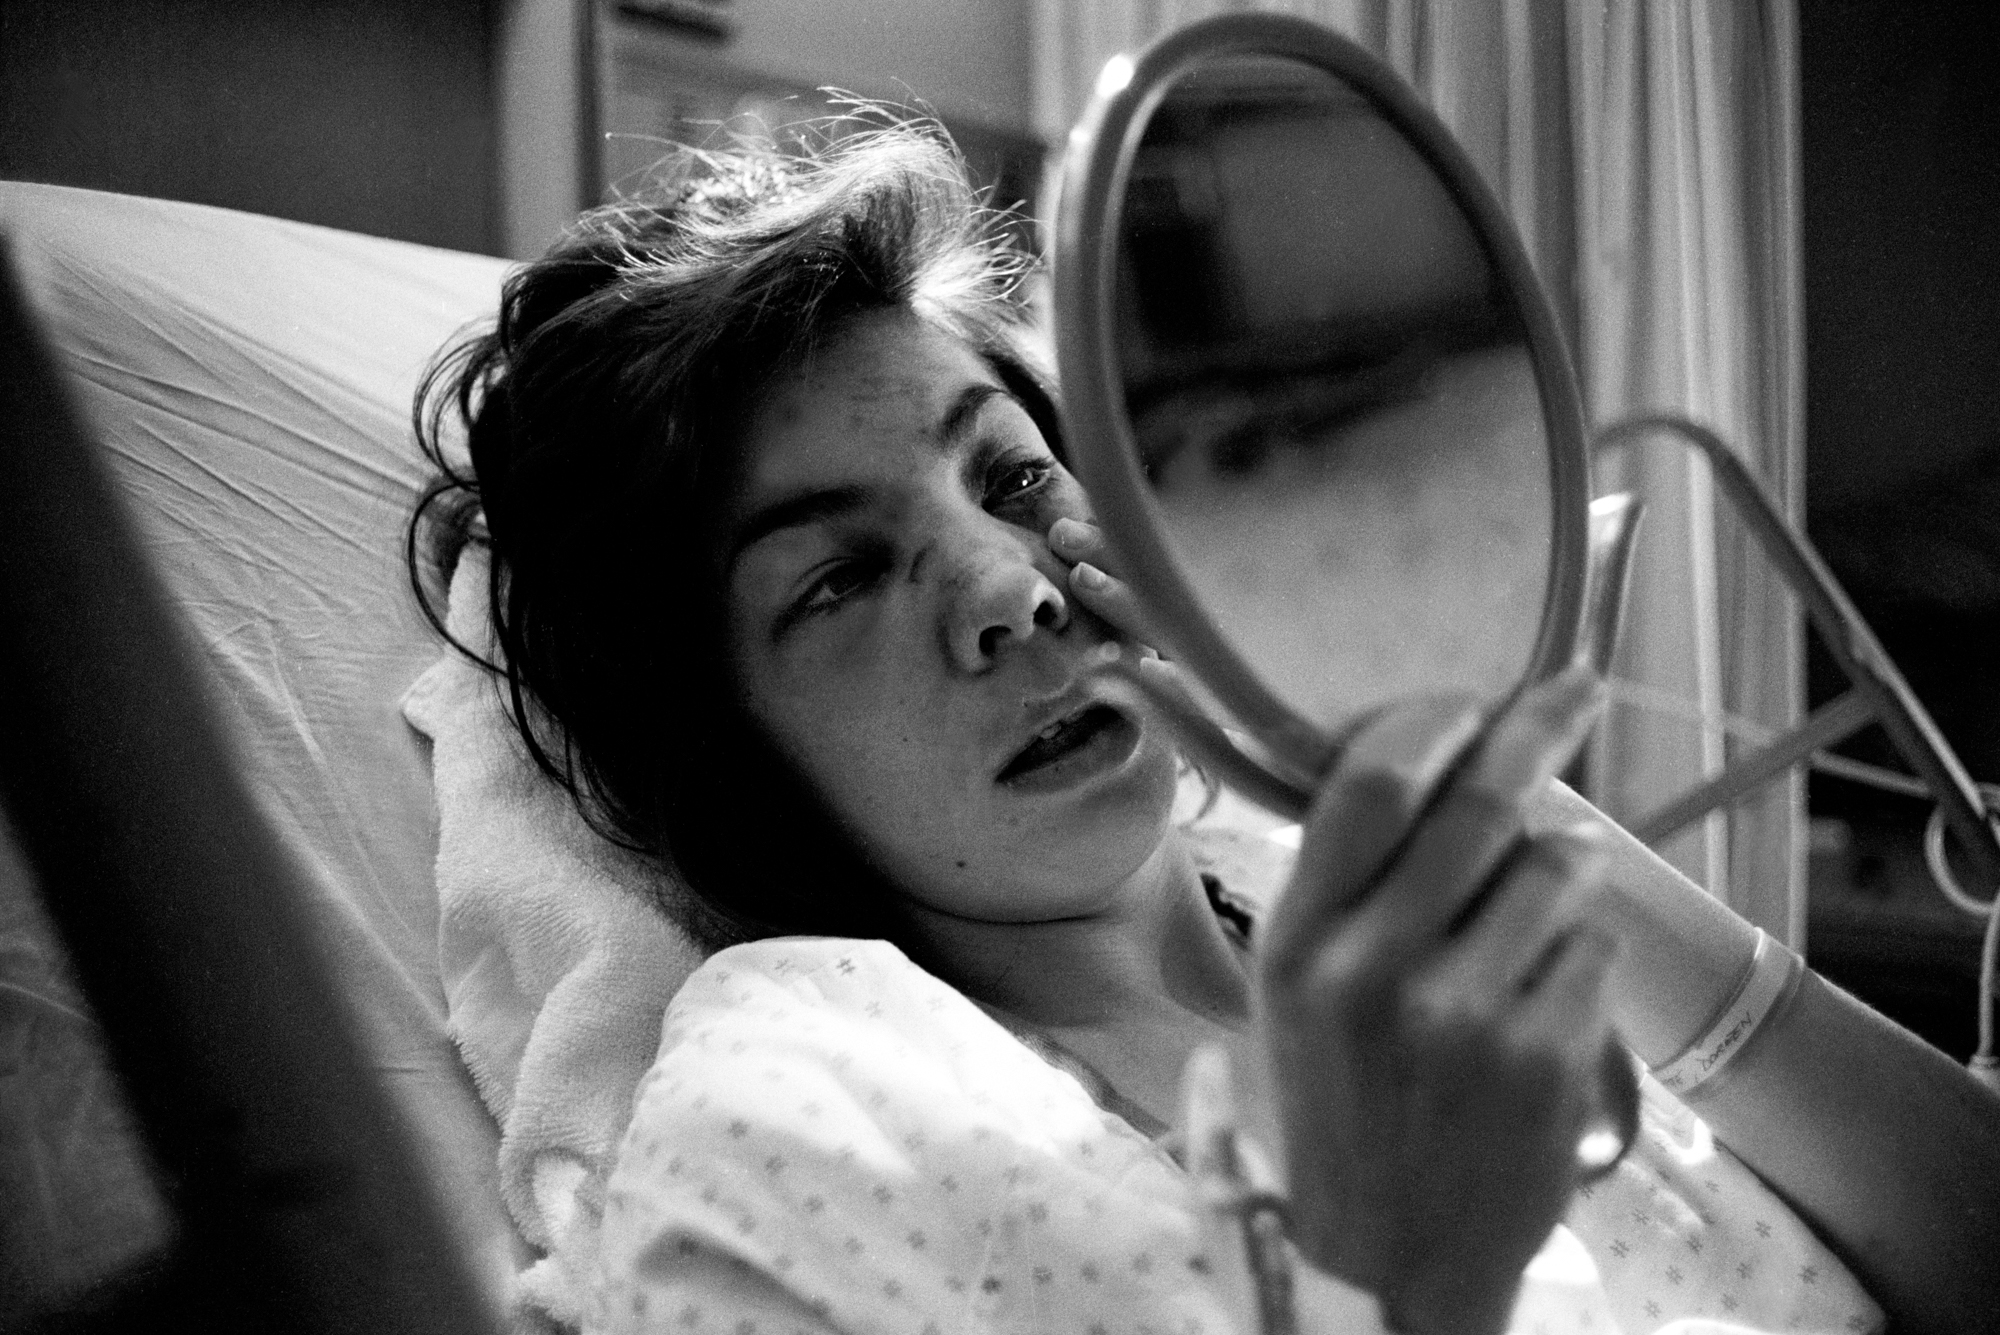 Diana in the Hospital